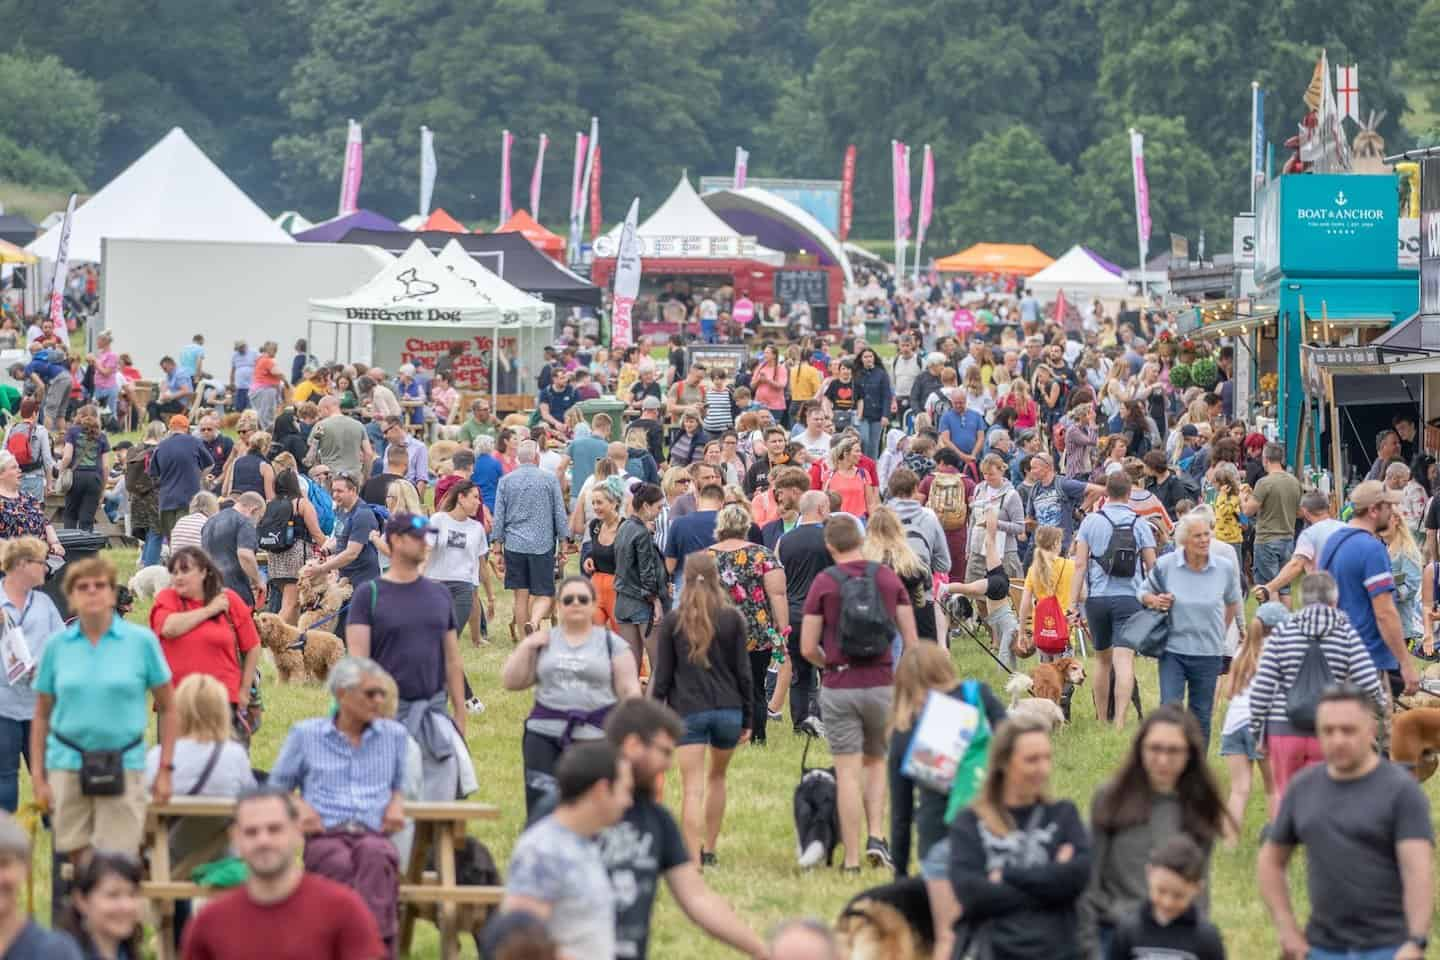 DogFest South 2020 at Knebworth House